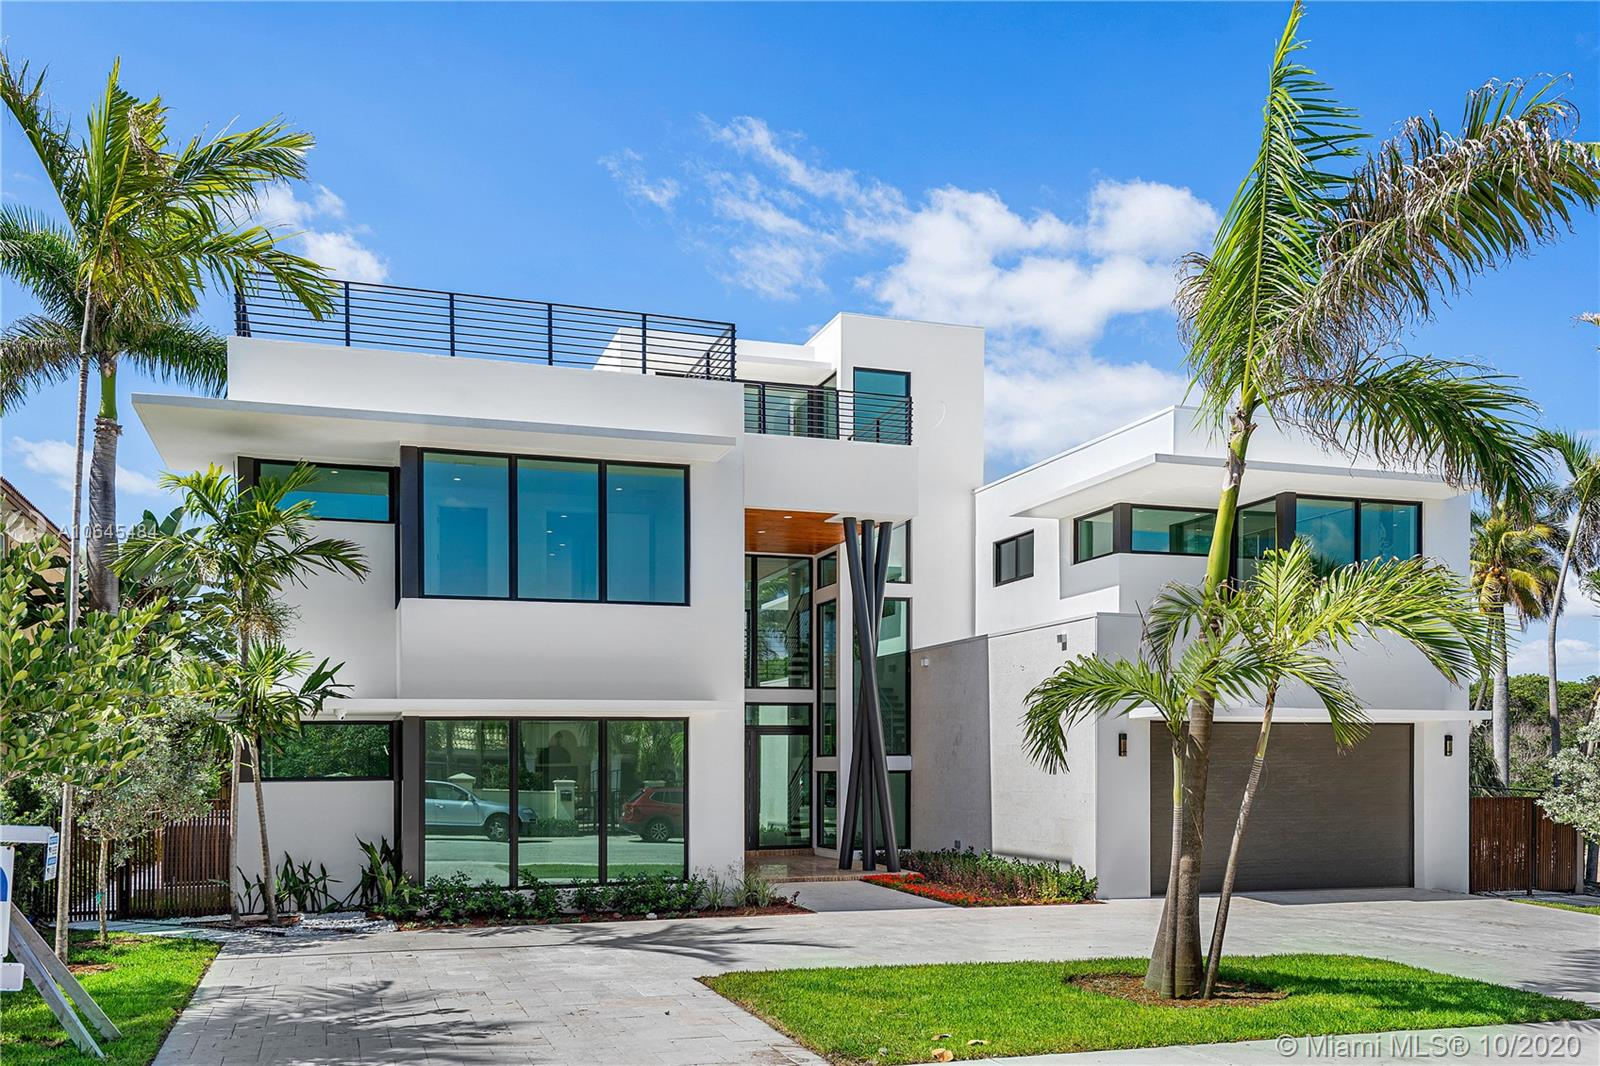 """Spectacular New Construction 5 bed/5 bath pool home in a very desirable location just a short block from the beach. This home was built to the highest standards with impeccable finishes. The patios and terraces have southern exposure, which takes advantage of the winter sun. The third floor has views of the ocean and the park. It is an ideal spot to """"chill"""" and expand the entertainment areas of the home. Naturally, the home has an elevator. The first floor has a large bedroom which could be used for a mother-in-law , maid or quest quarters. The large 1/4 acre + lot adjacent is also available, this lot backs up to the park with access to the lake """"lagoon""""."""